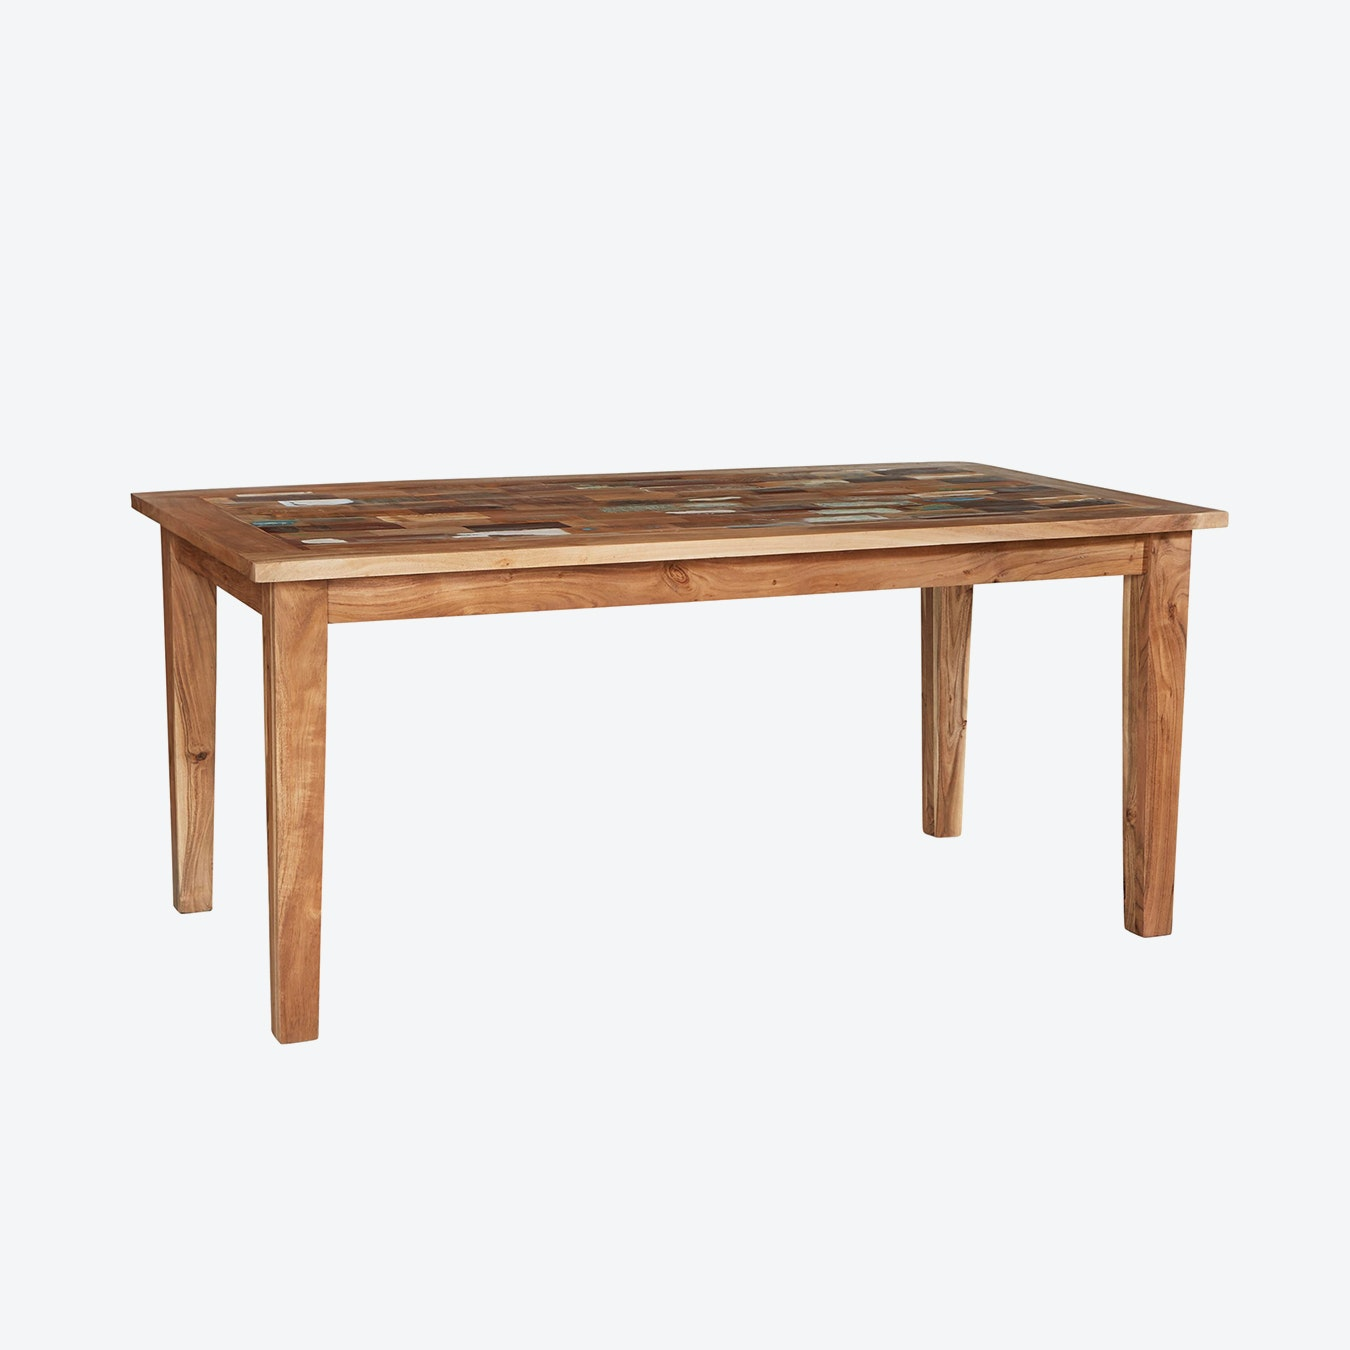 Large Reclaimed Wood Dining Table By Indian Hub Fy